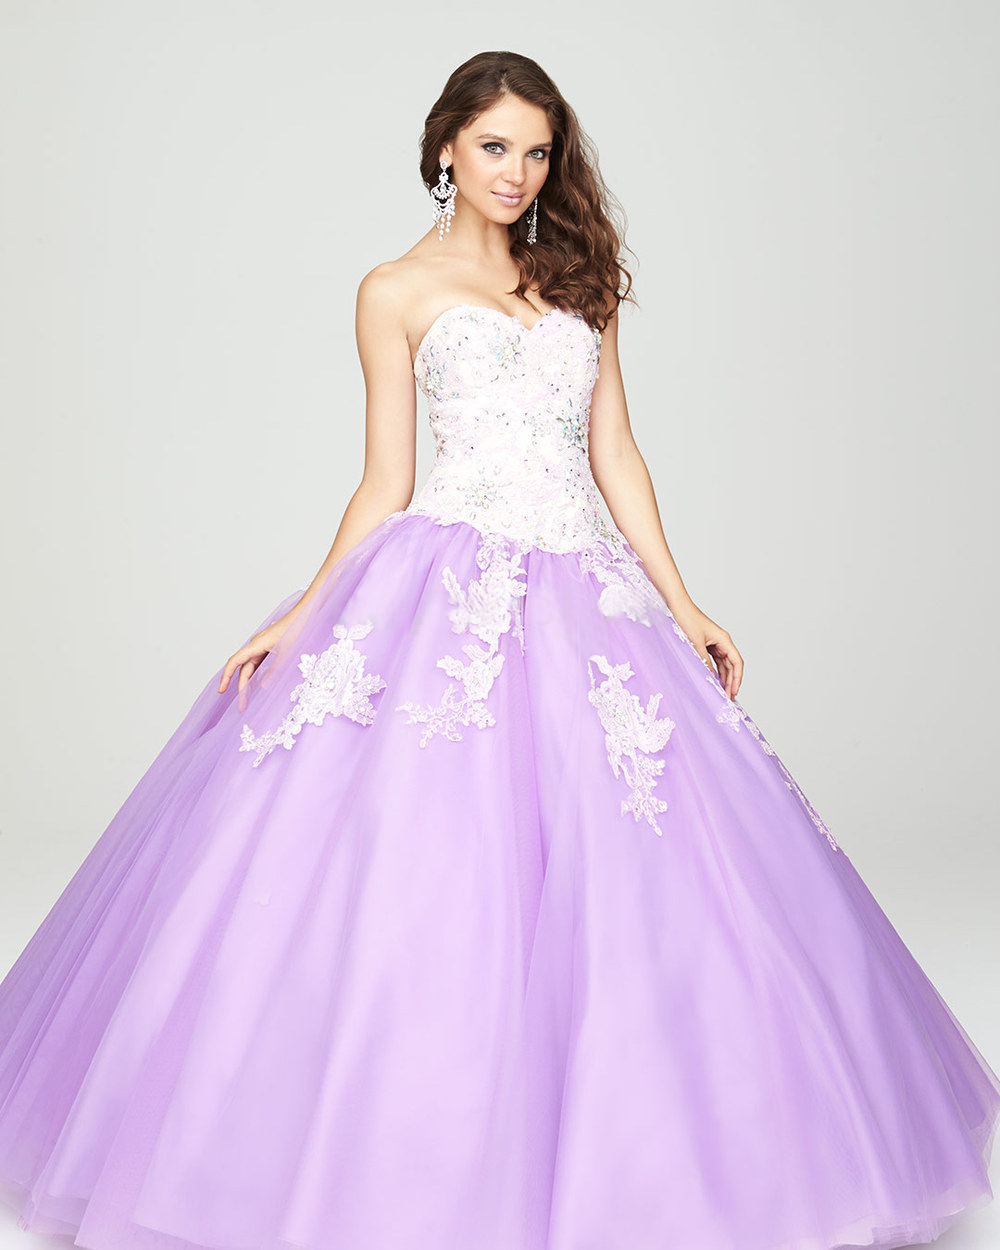 2015 Hot Sale Ball Gown Light Purple Dress 15 Years Lace Appliqued ...